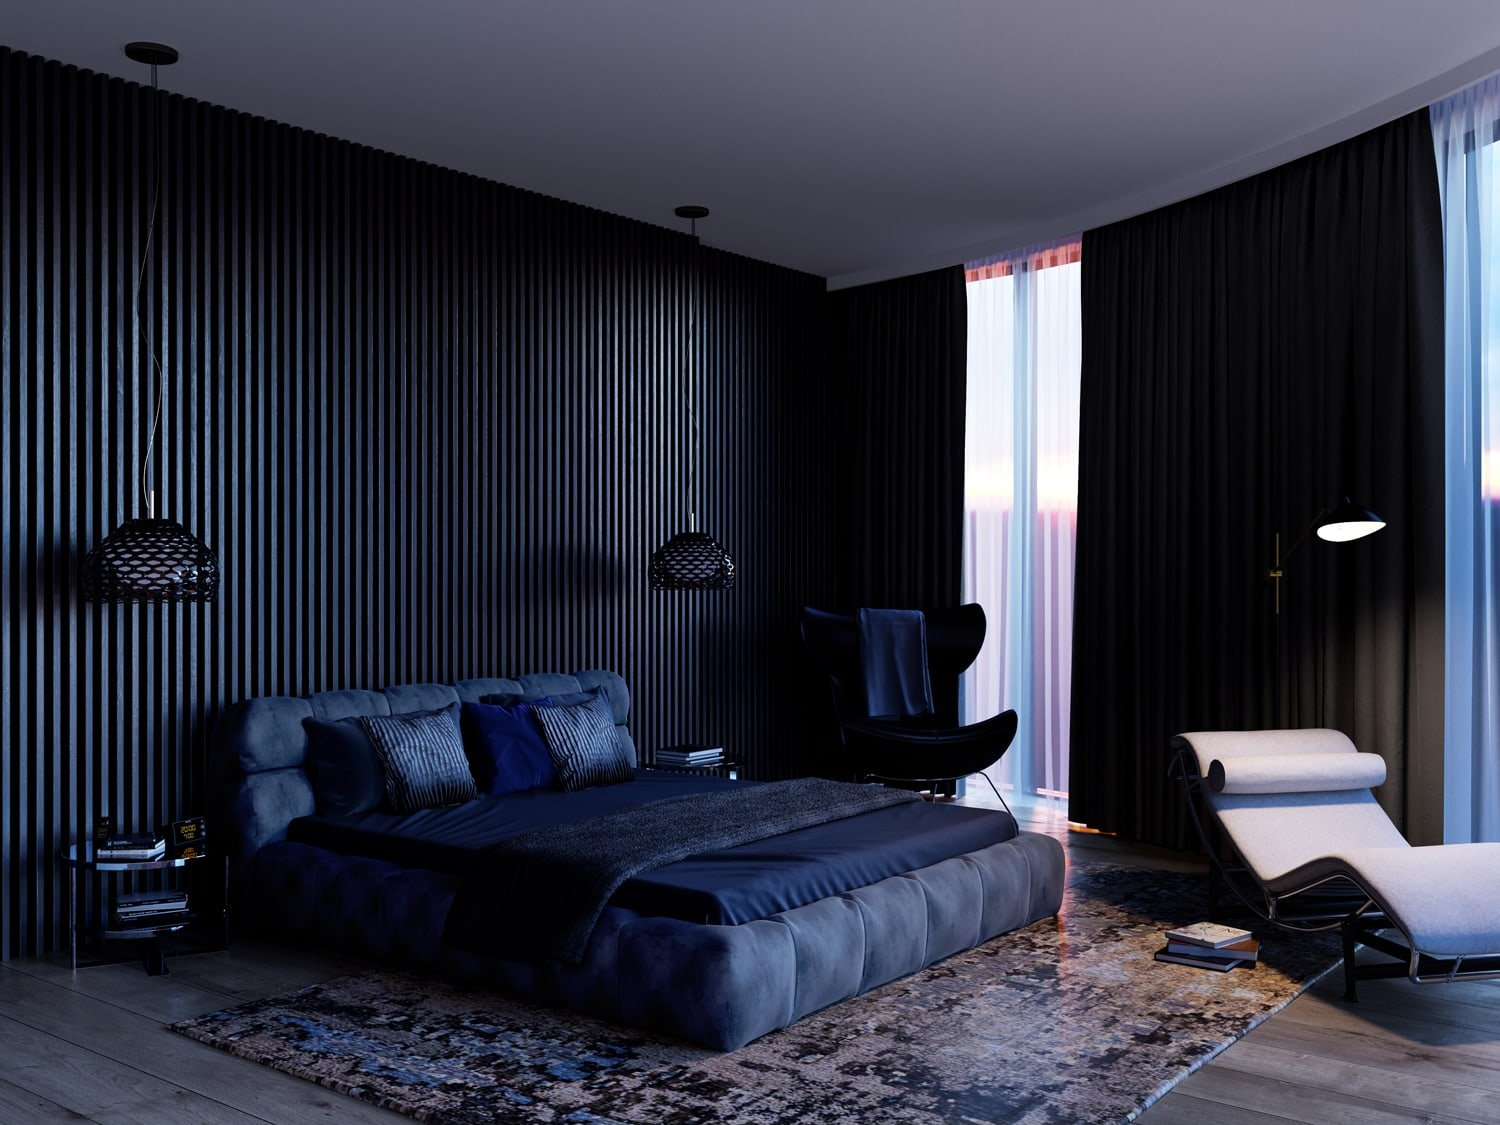 Dark evening shot of a luxurious bedroom, with partly open curtains showing sunset light through the windows. The room is neat and expensive looking. Part of the dynamic creative pack.